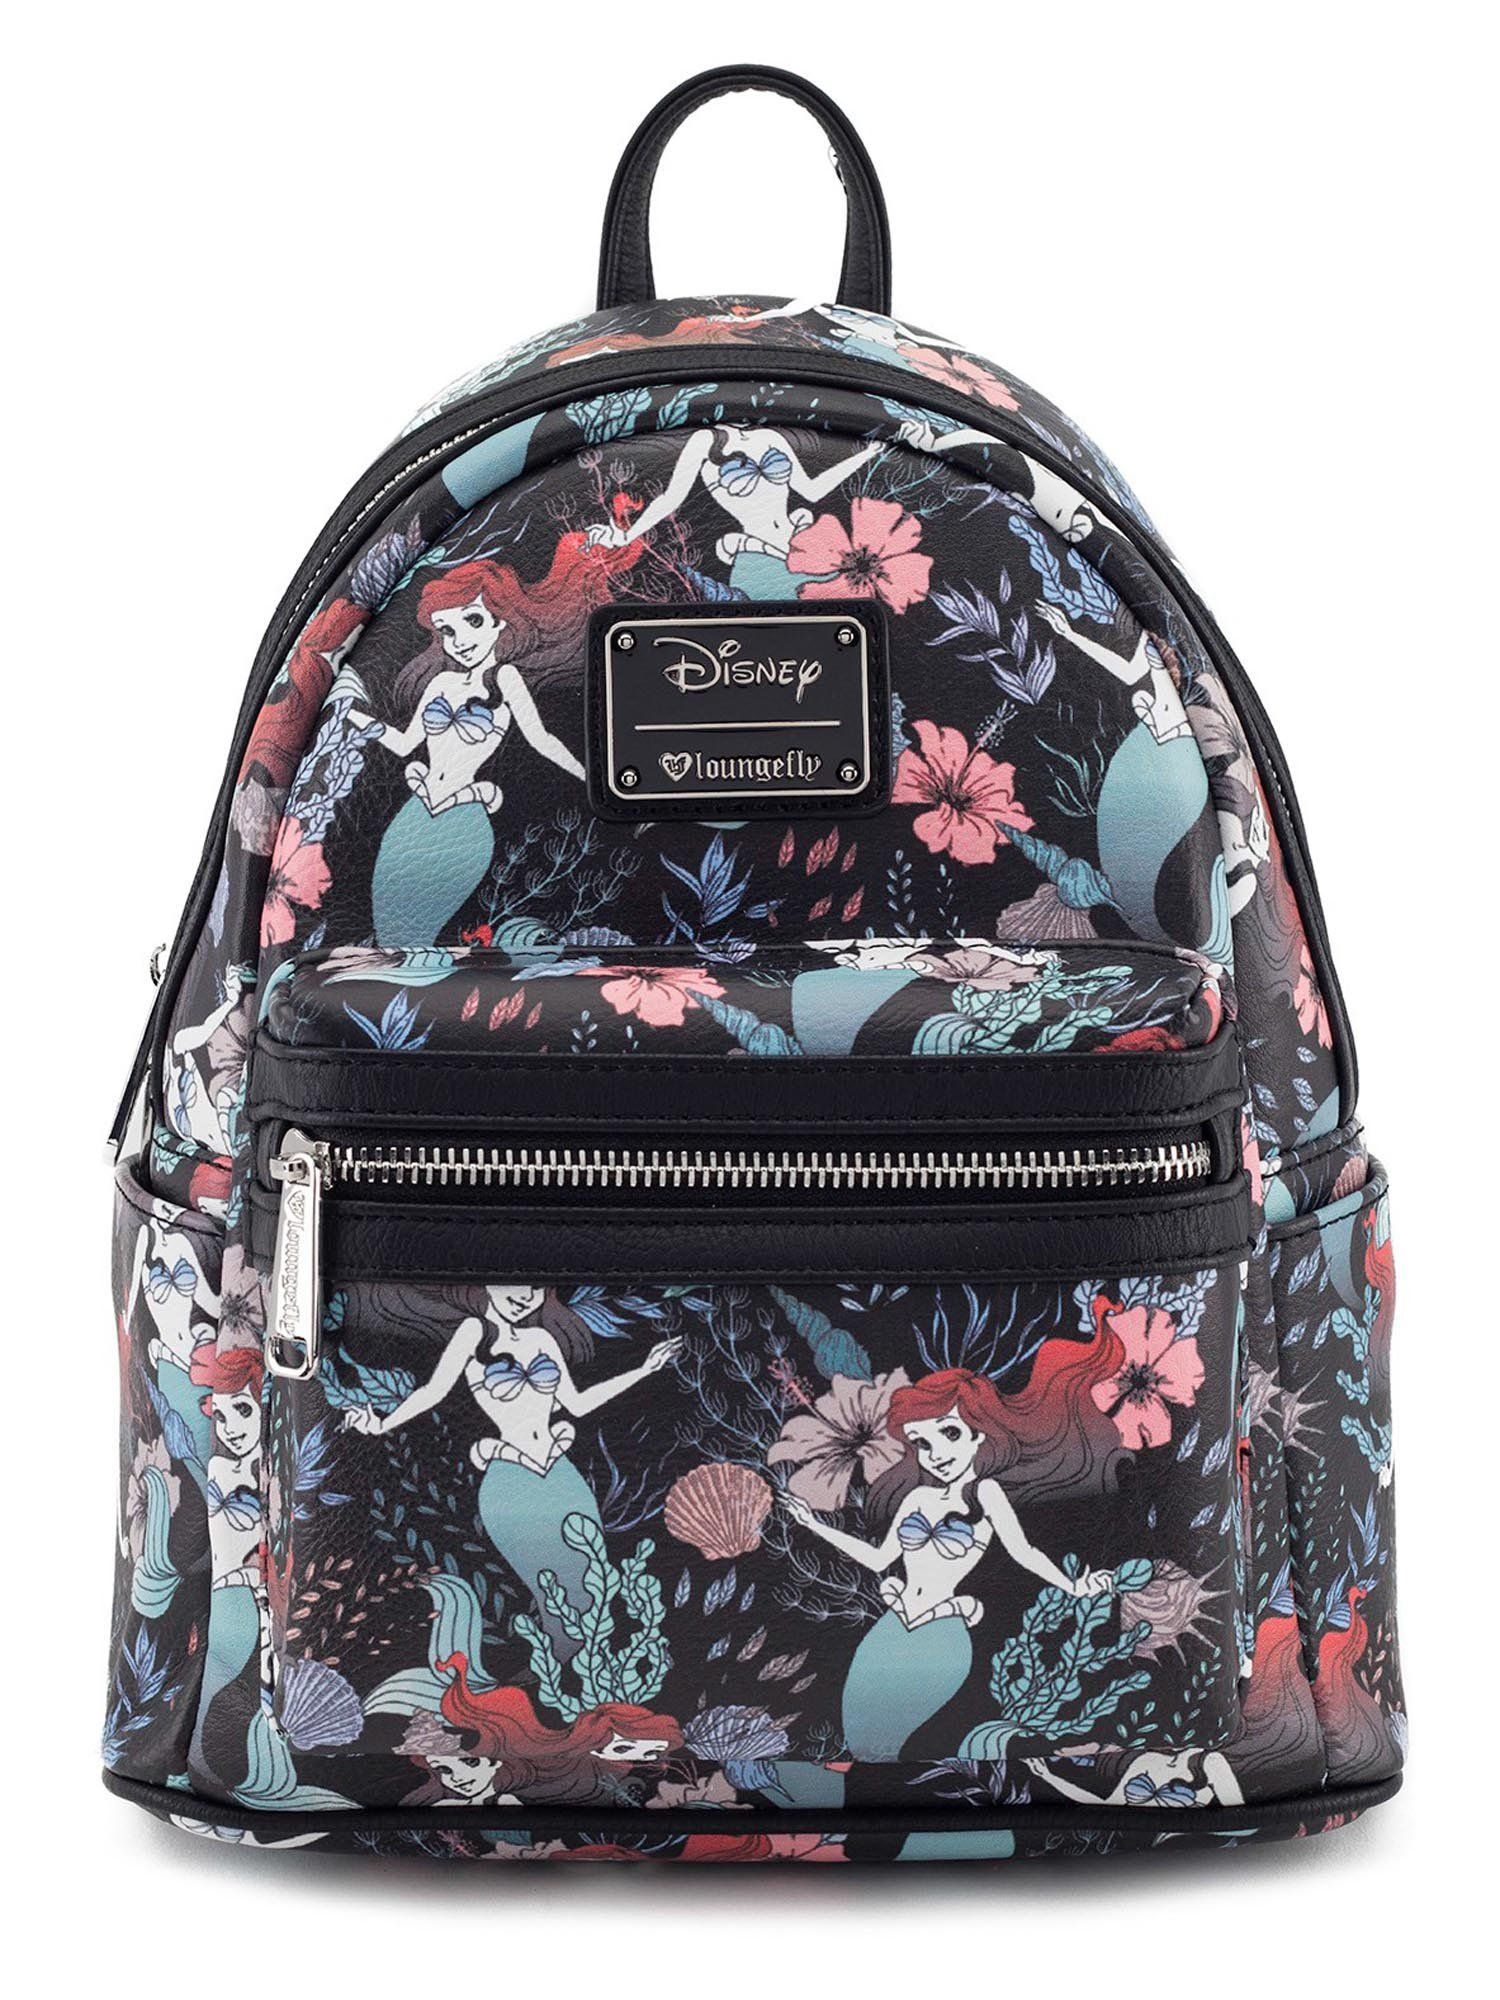 7b8c3b0d999 Loungefly Disney Ariel The Little Mermaid Floral Mini Backpack Purse ...